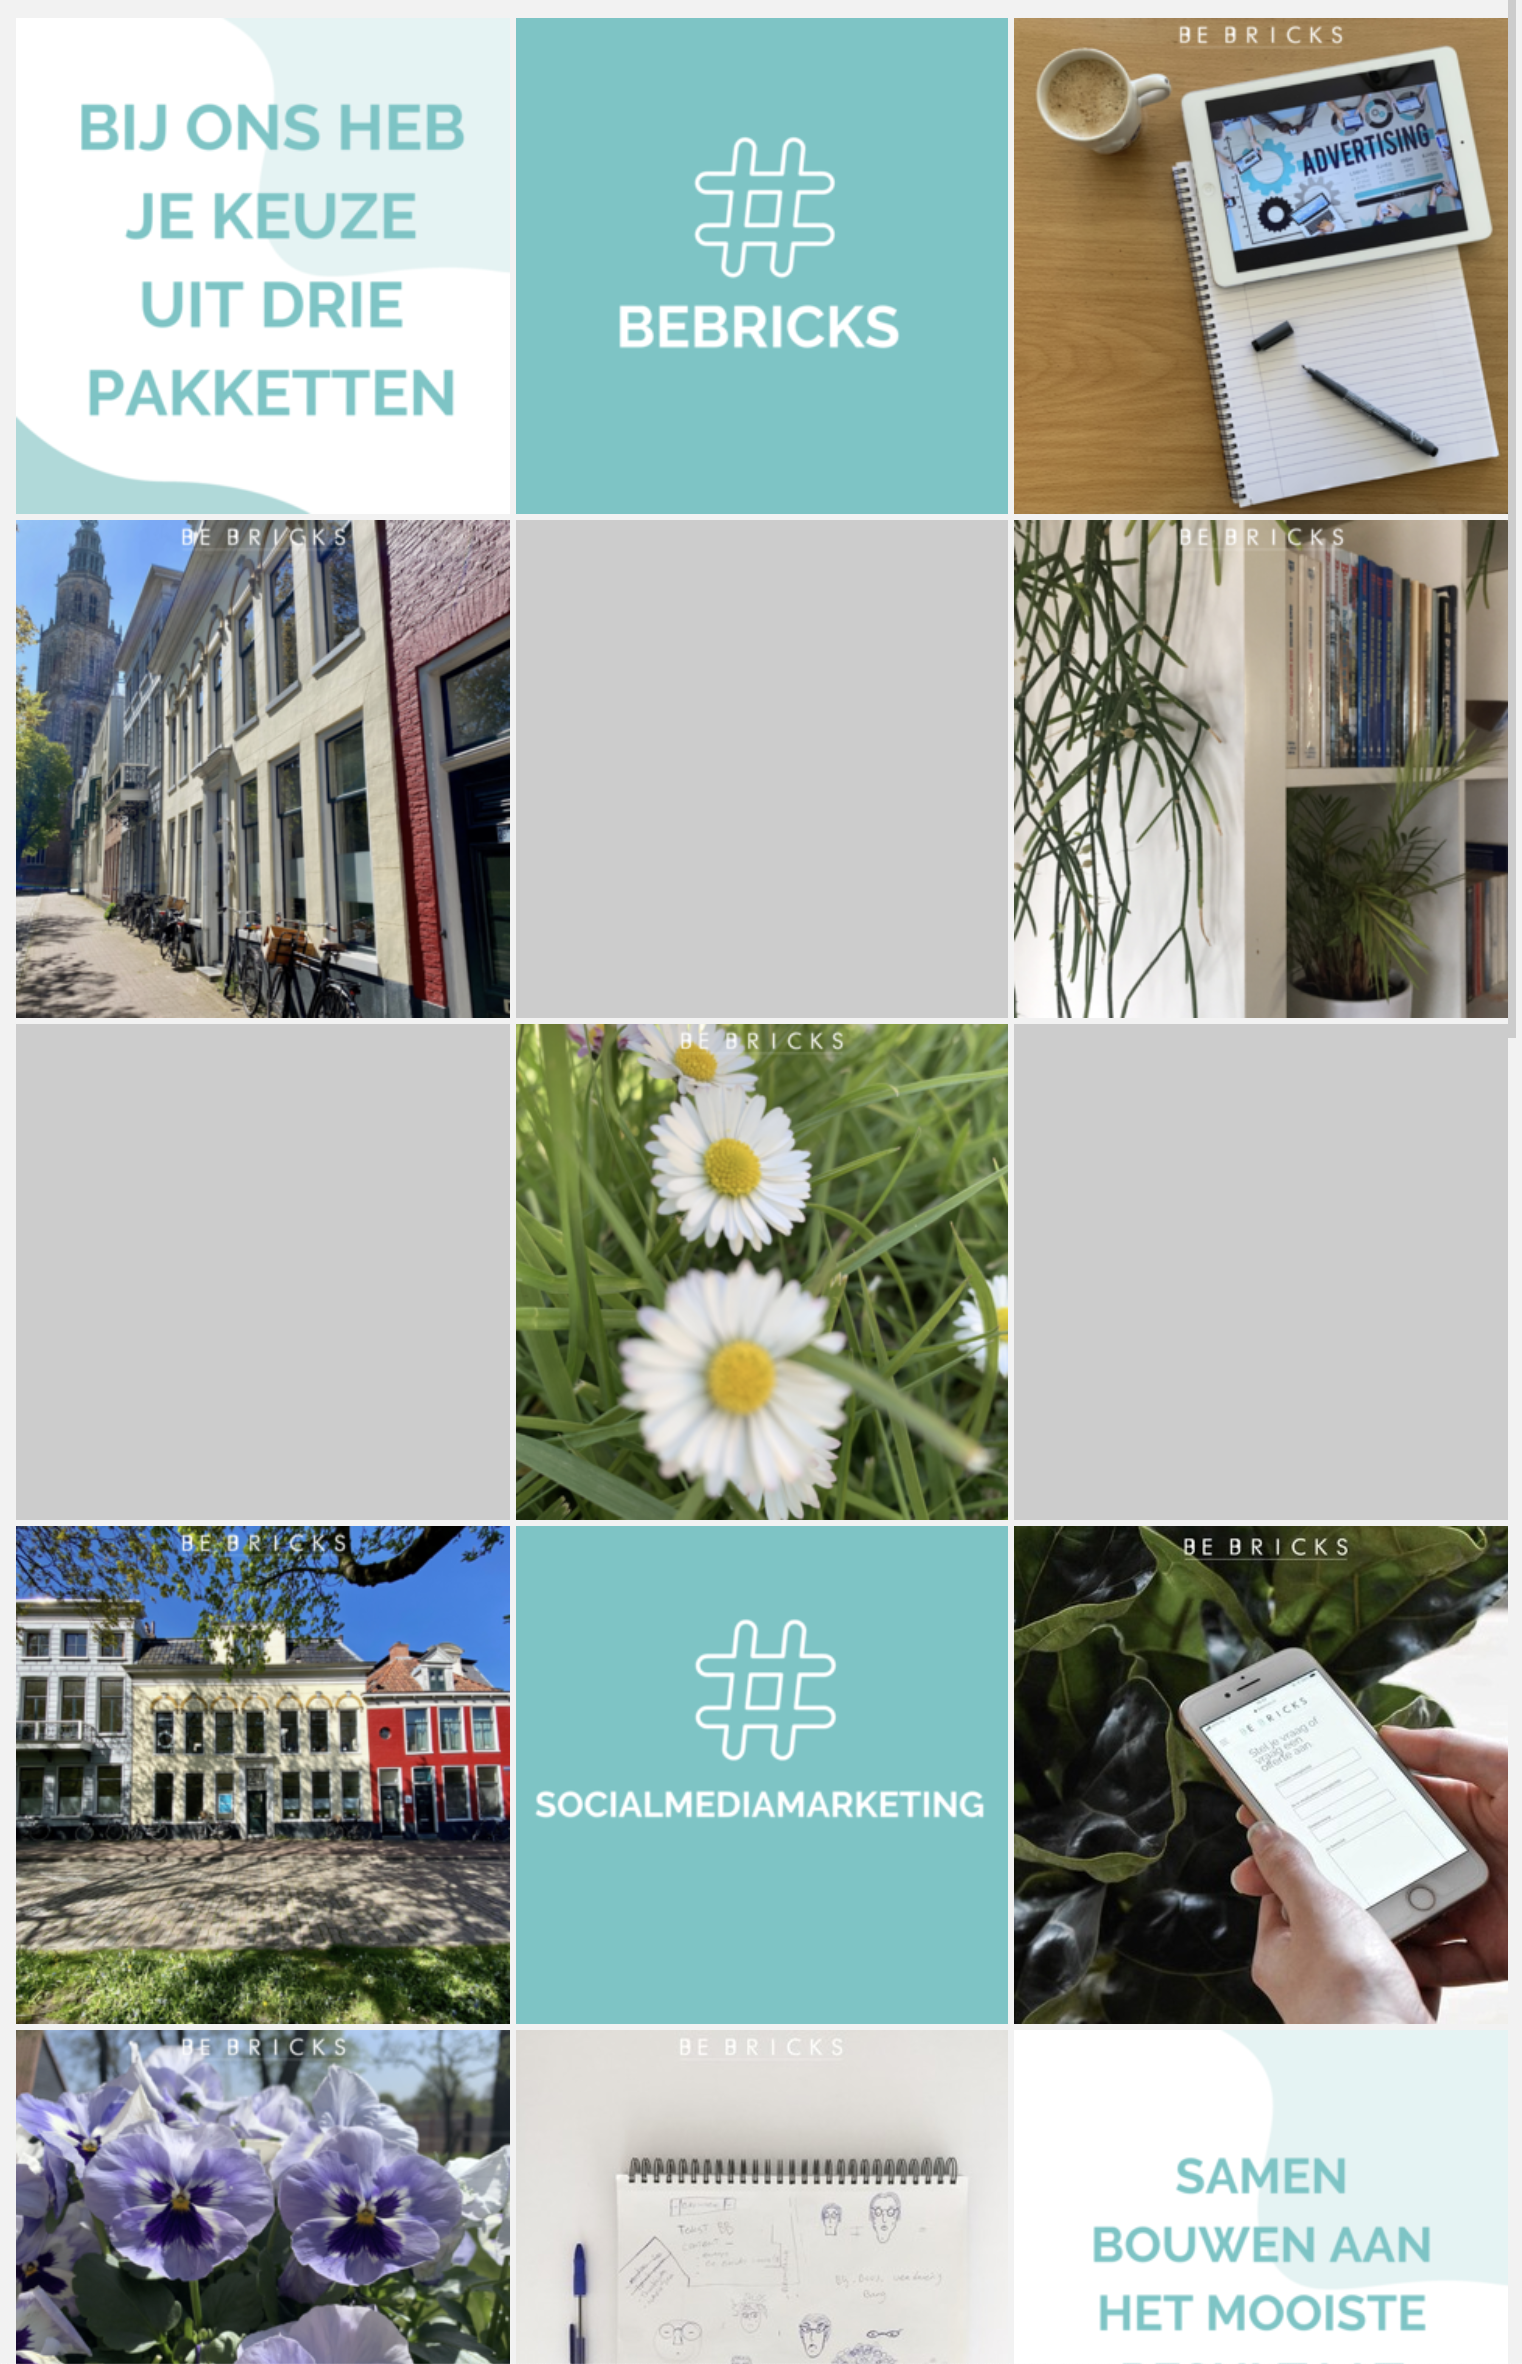 Instagramfeed Be Bricks social media marketing Groningen